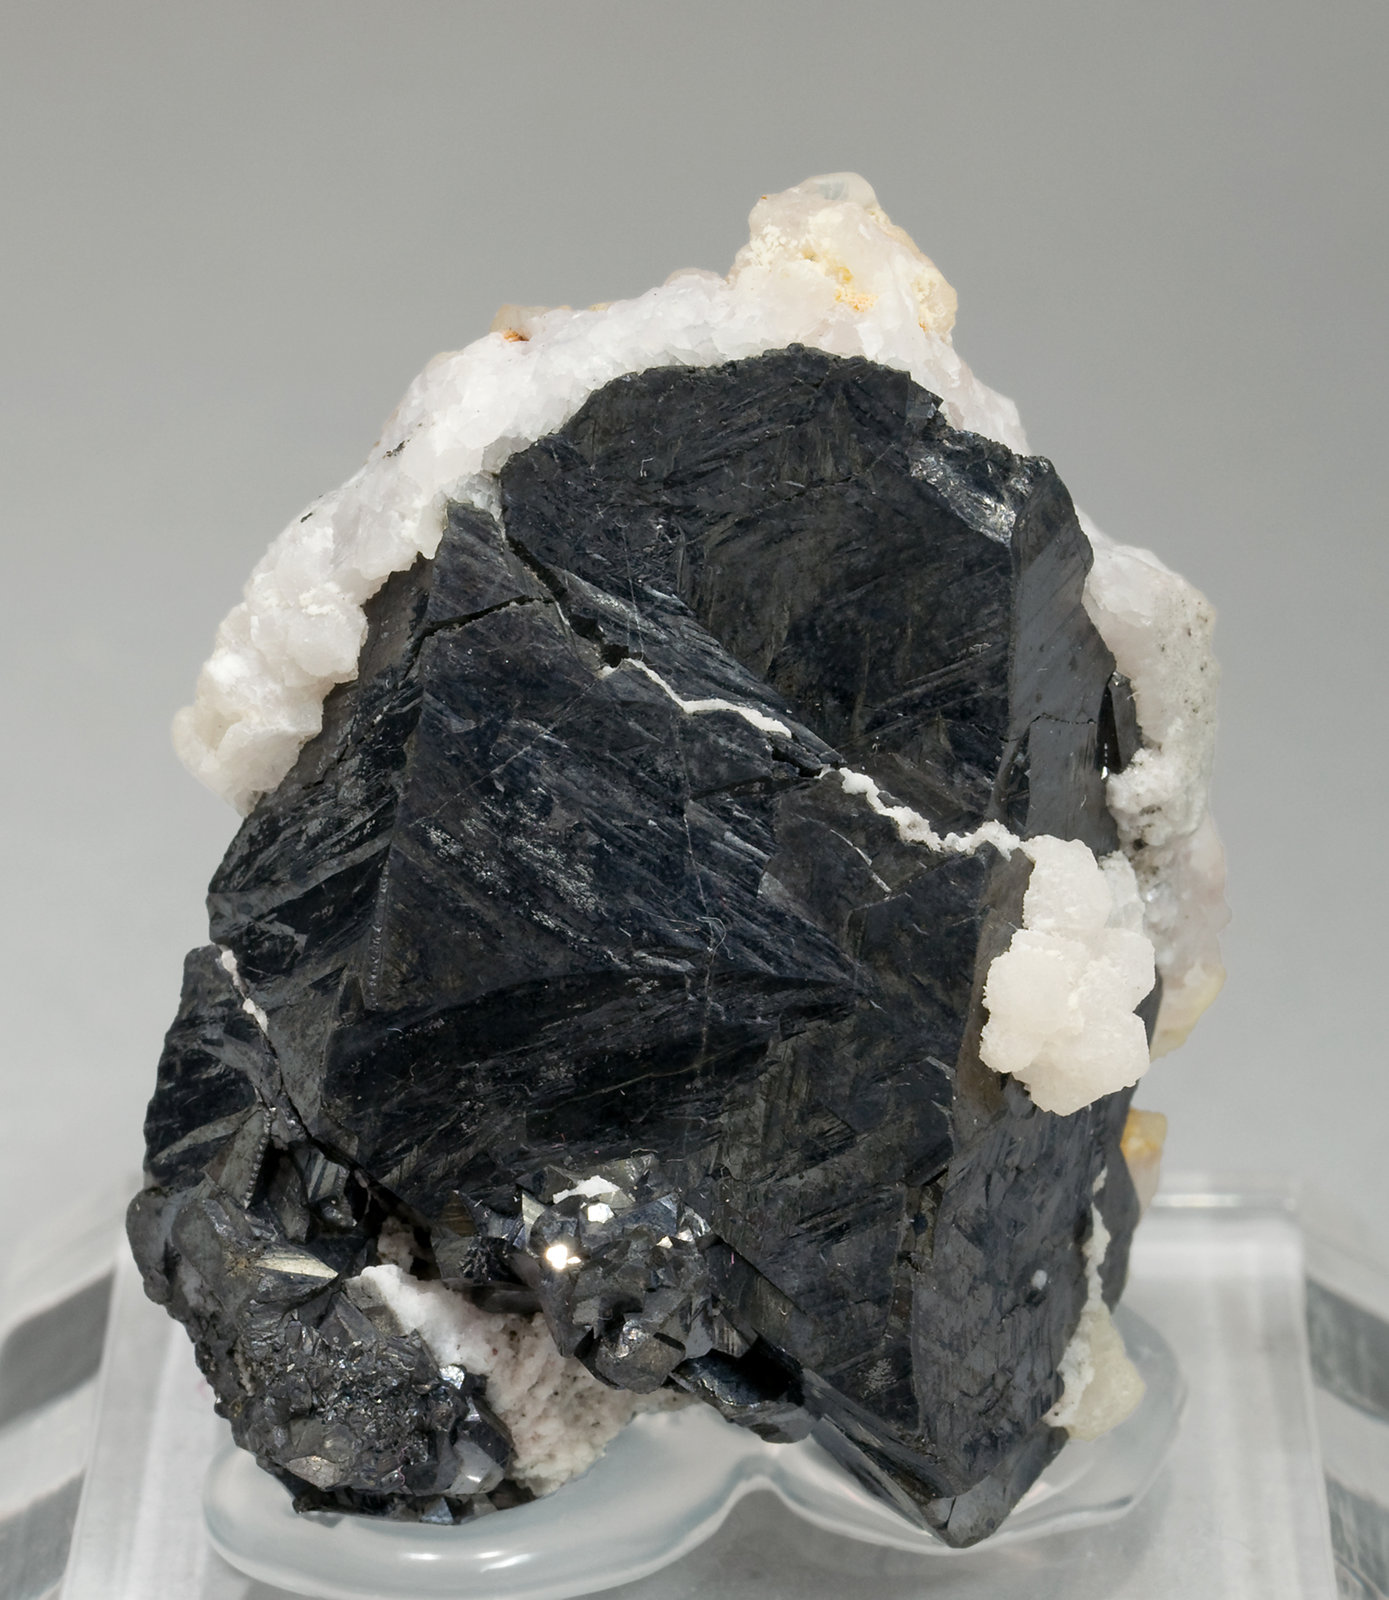 specimens/s_imagesT6/Alabandite-MC92T6f.jpg